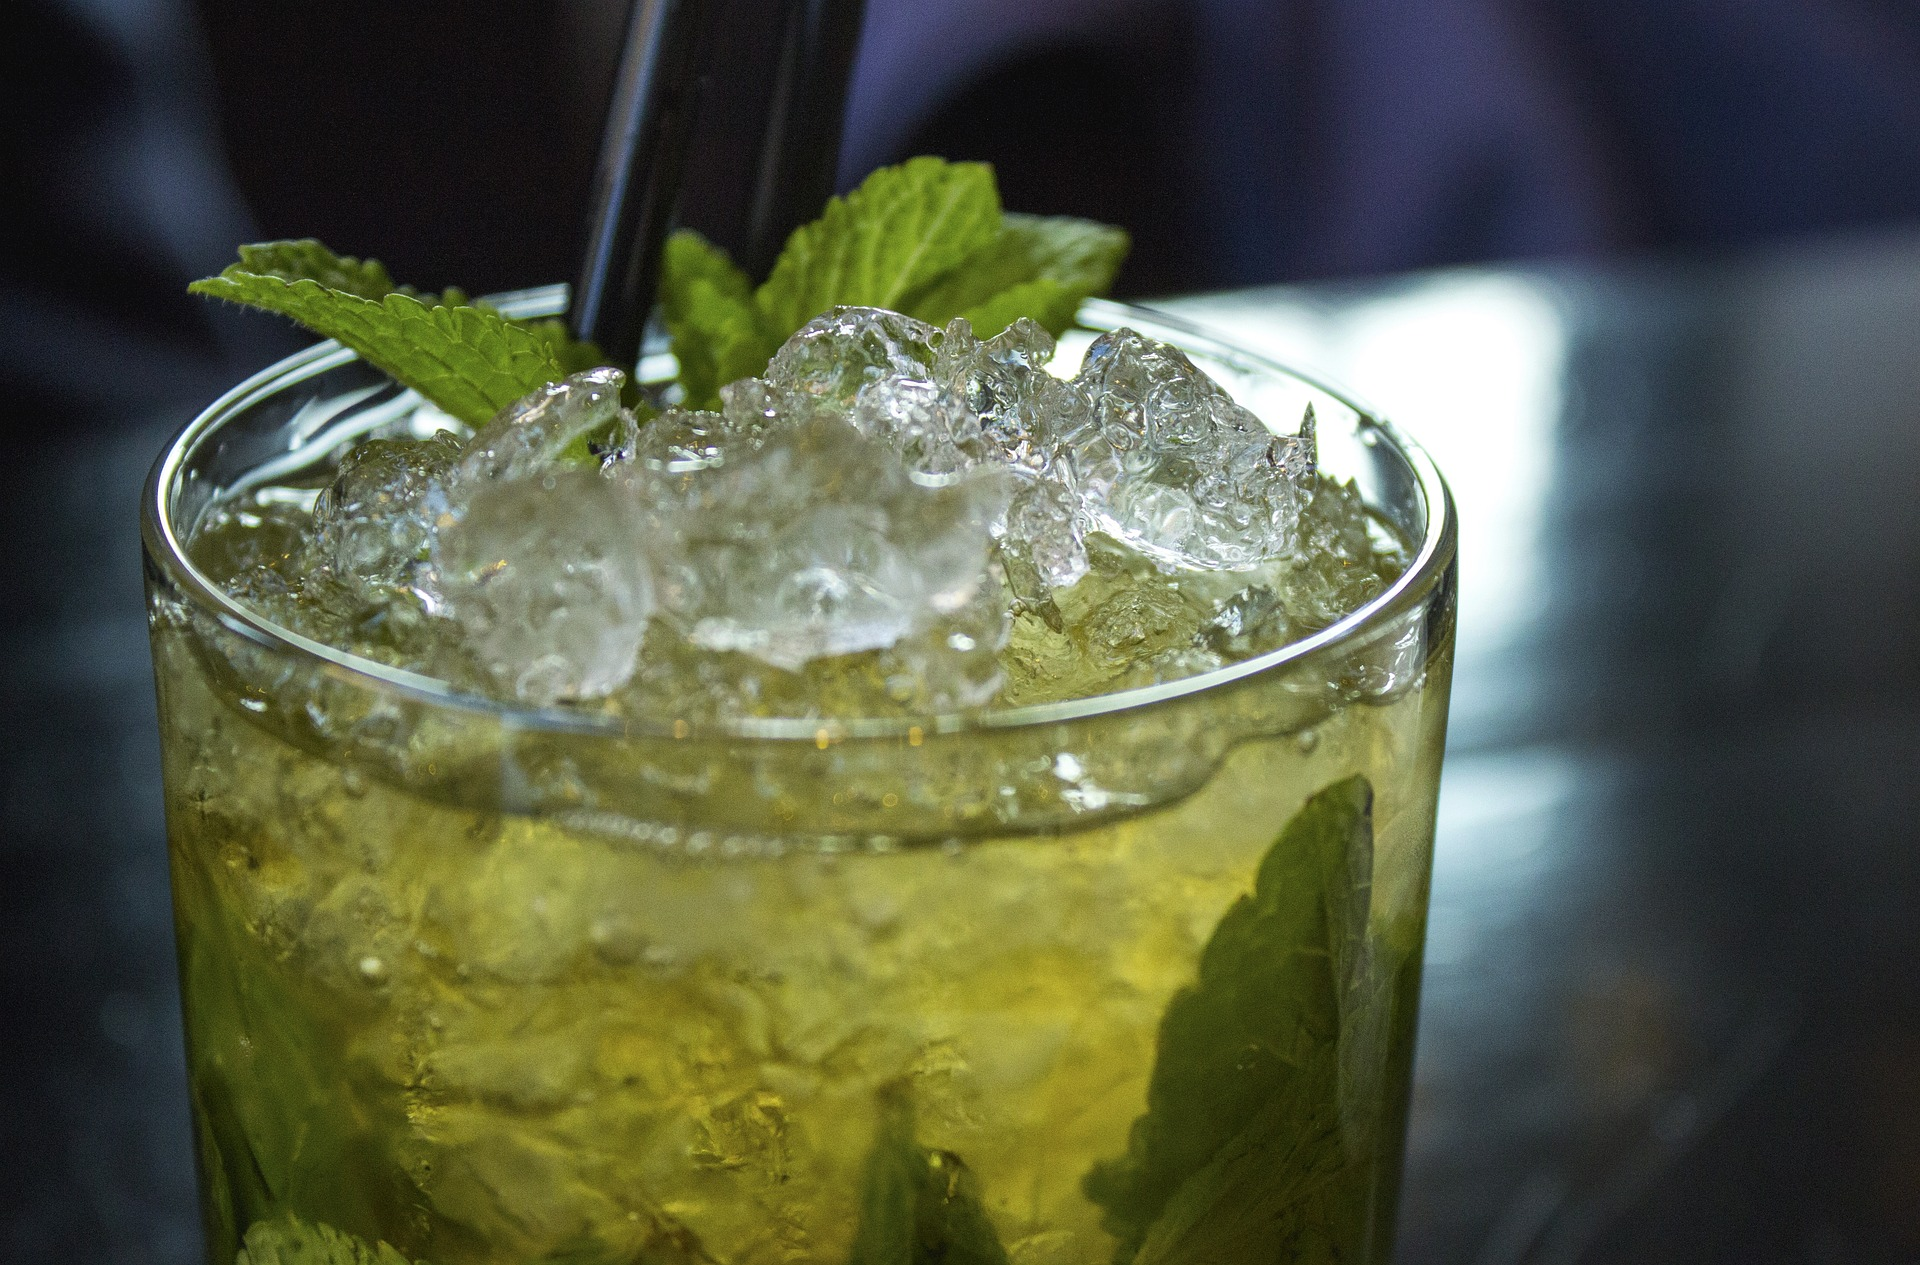 The mojito is one of the most popular rum mixed drinks.